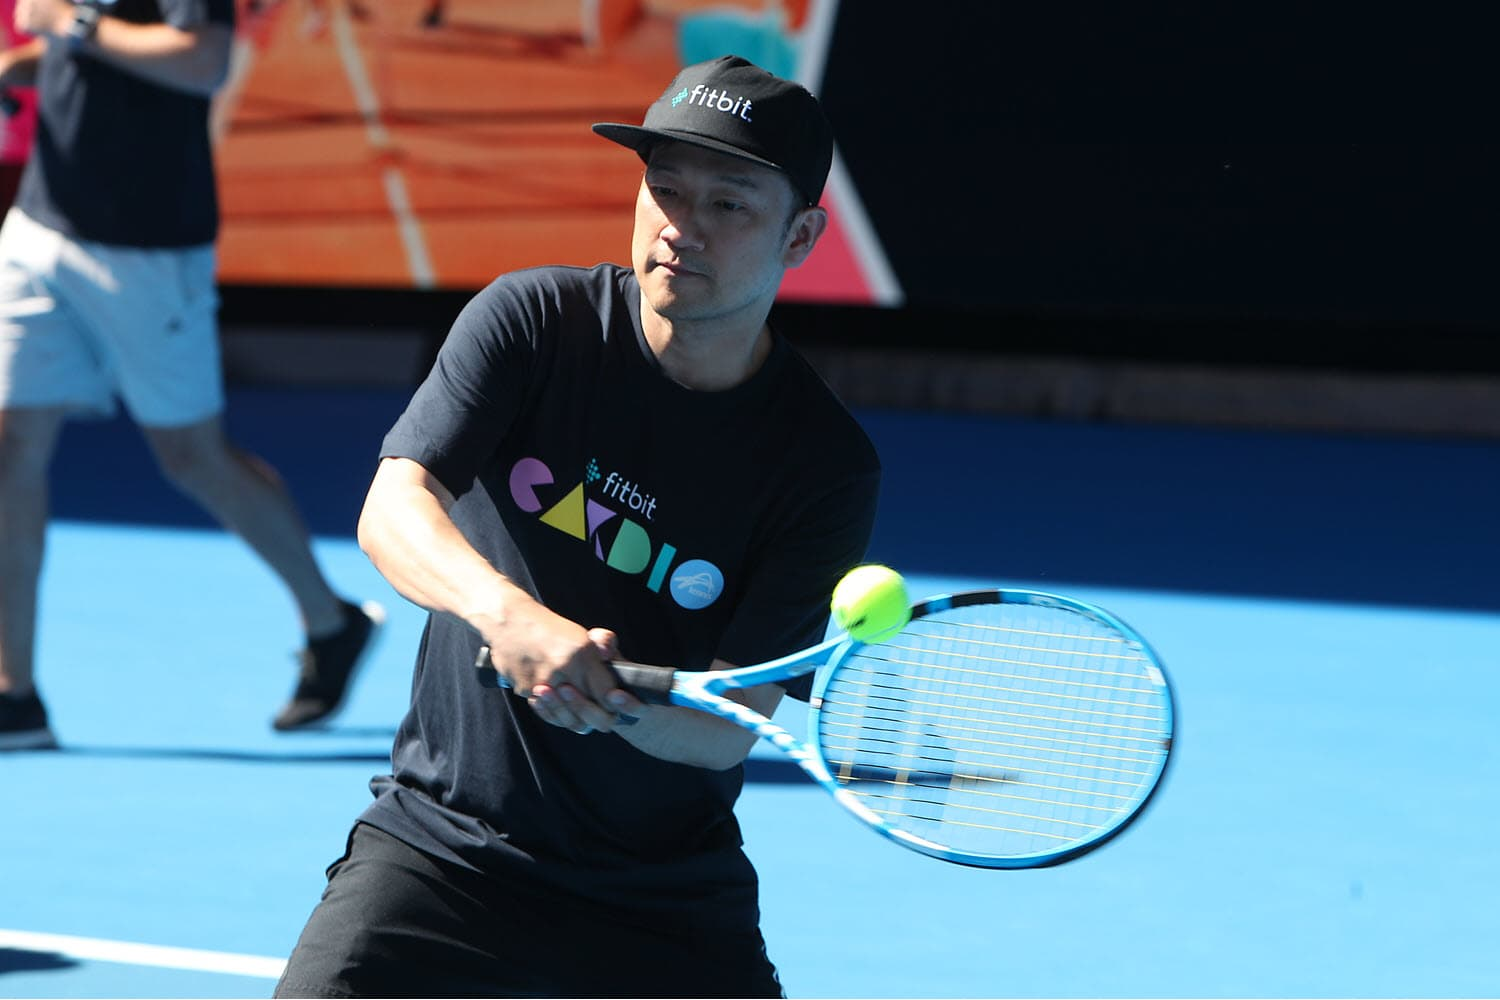 Michael at Australian Open 2019 with Fitbit Cardio Tennis